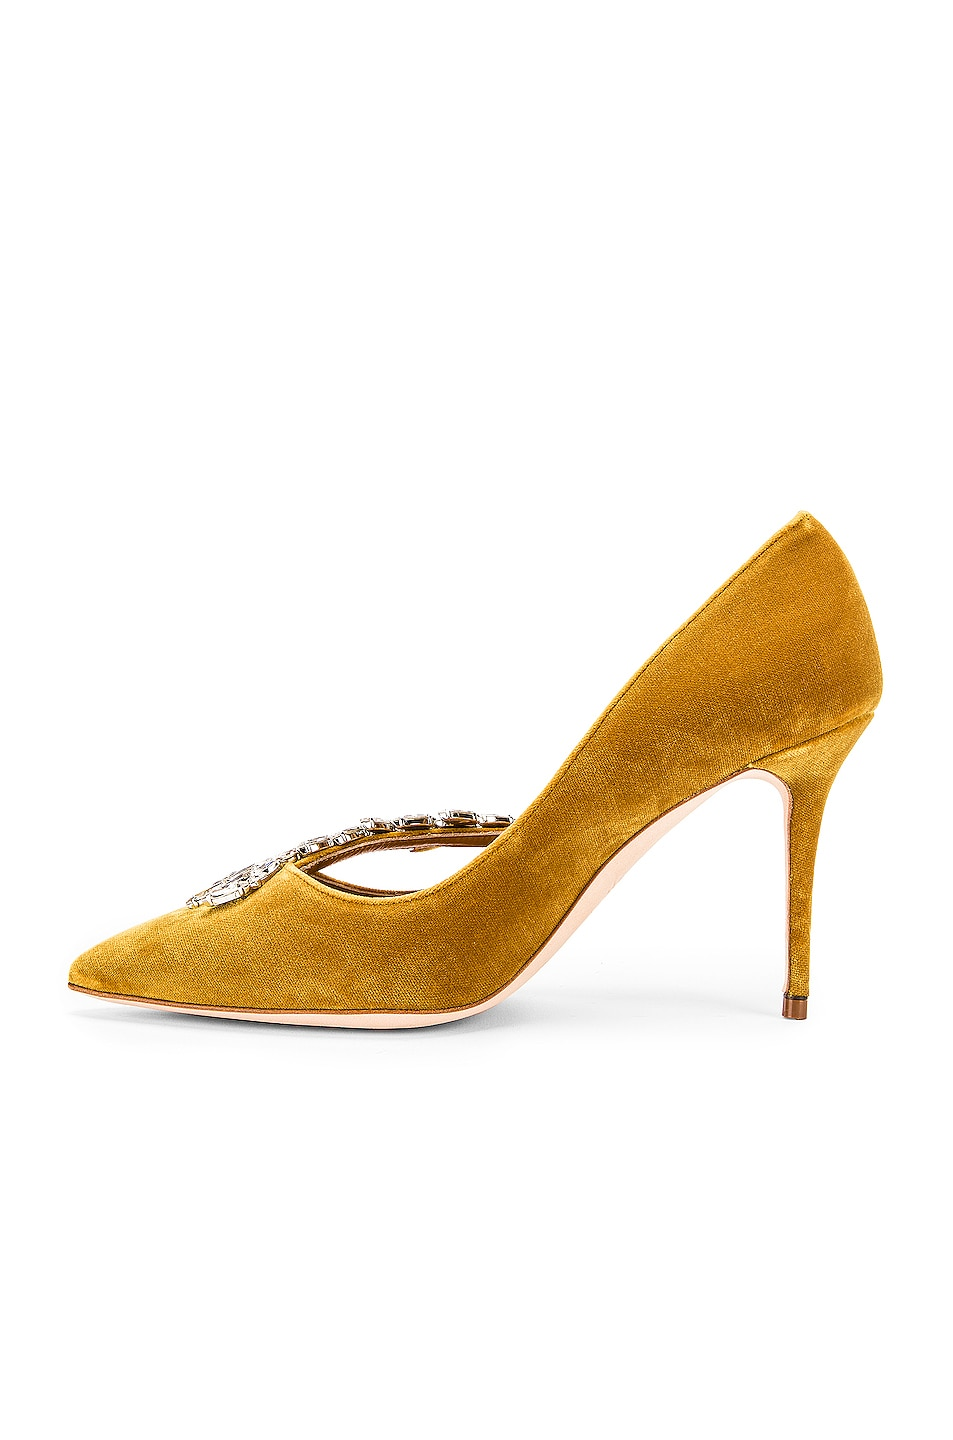 Image 5 of Manolo Blahnik Nadira 90 Velvet Heel in Yellow